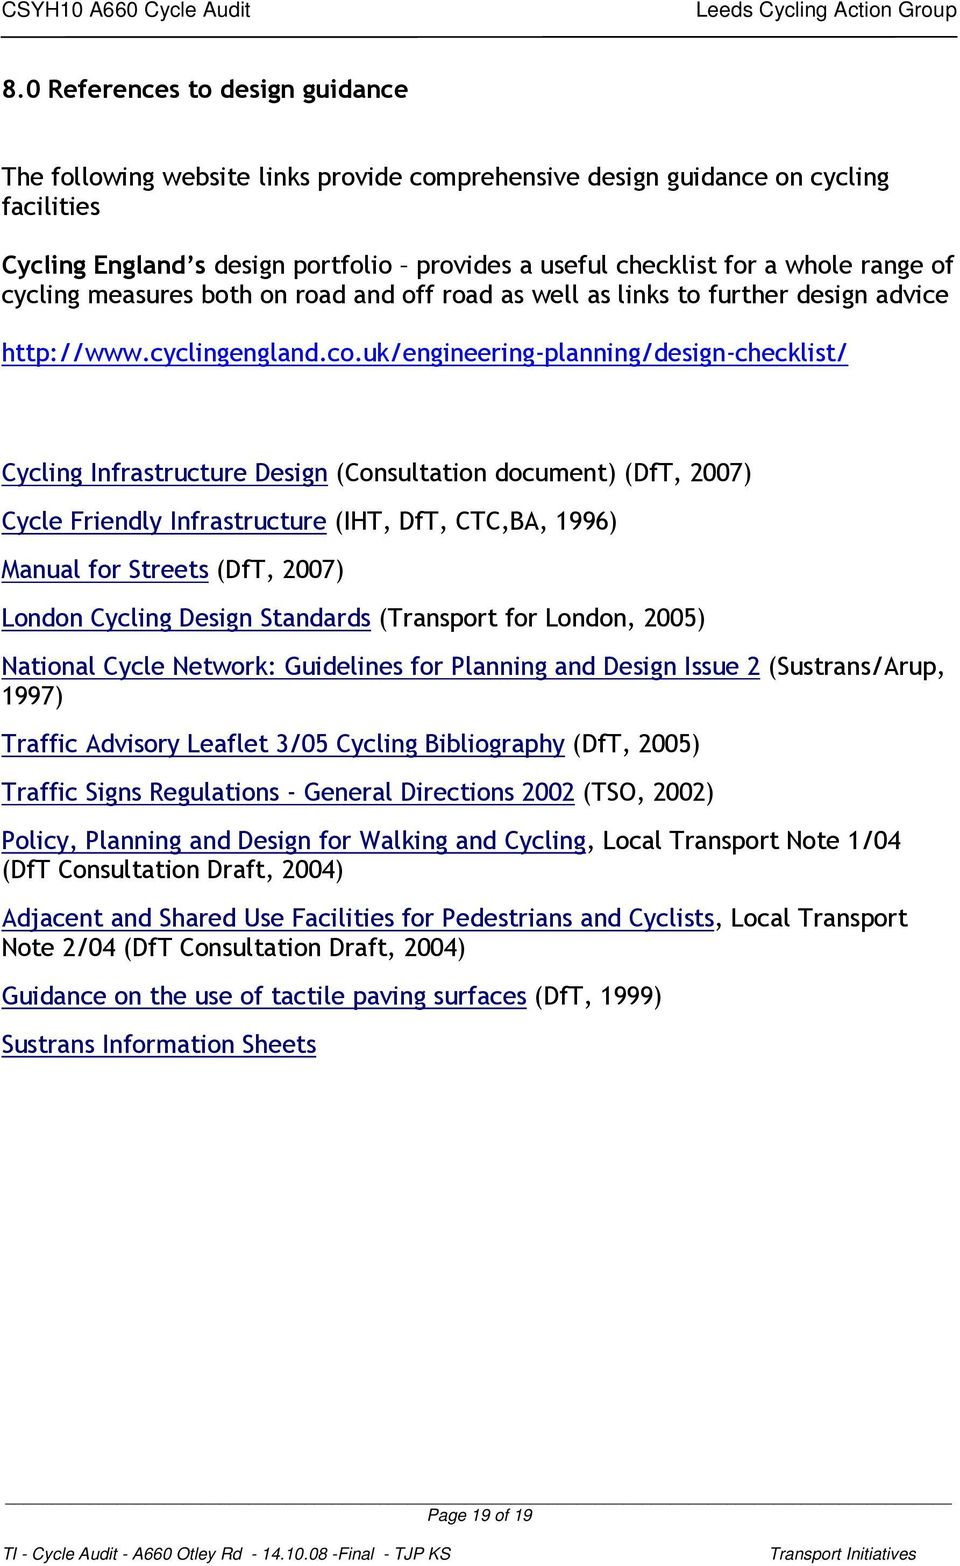 uk/engineering-planning/design-checklist/ Cycling Infrastructure Design (Consultation document) (DfT, 2007) Cycle Friendly Infrastructure (IHT, DfT, CTC,BA, 1996) Manual for Streets (DfT, 2007)